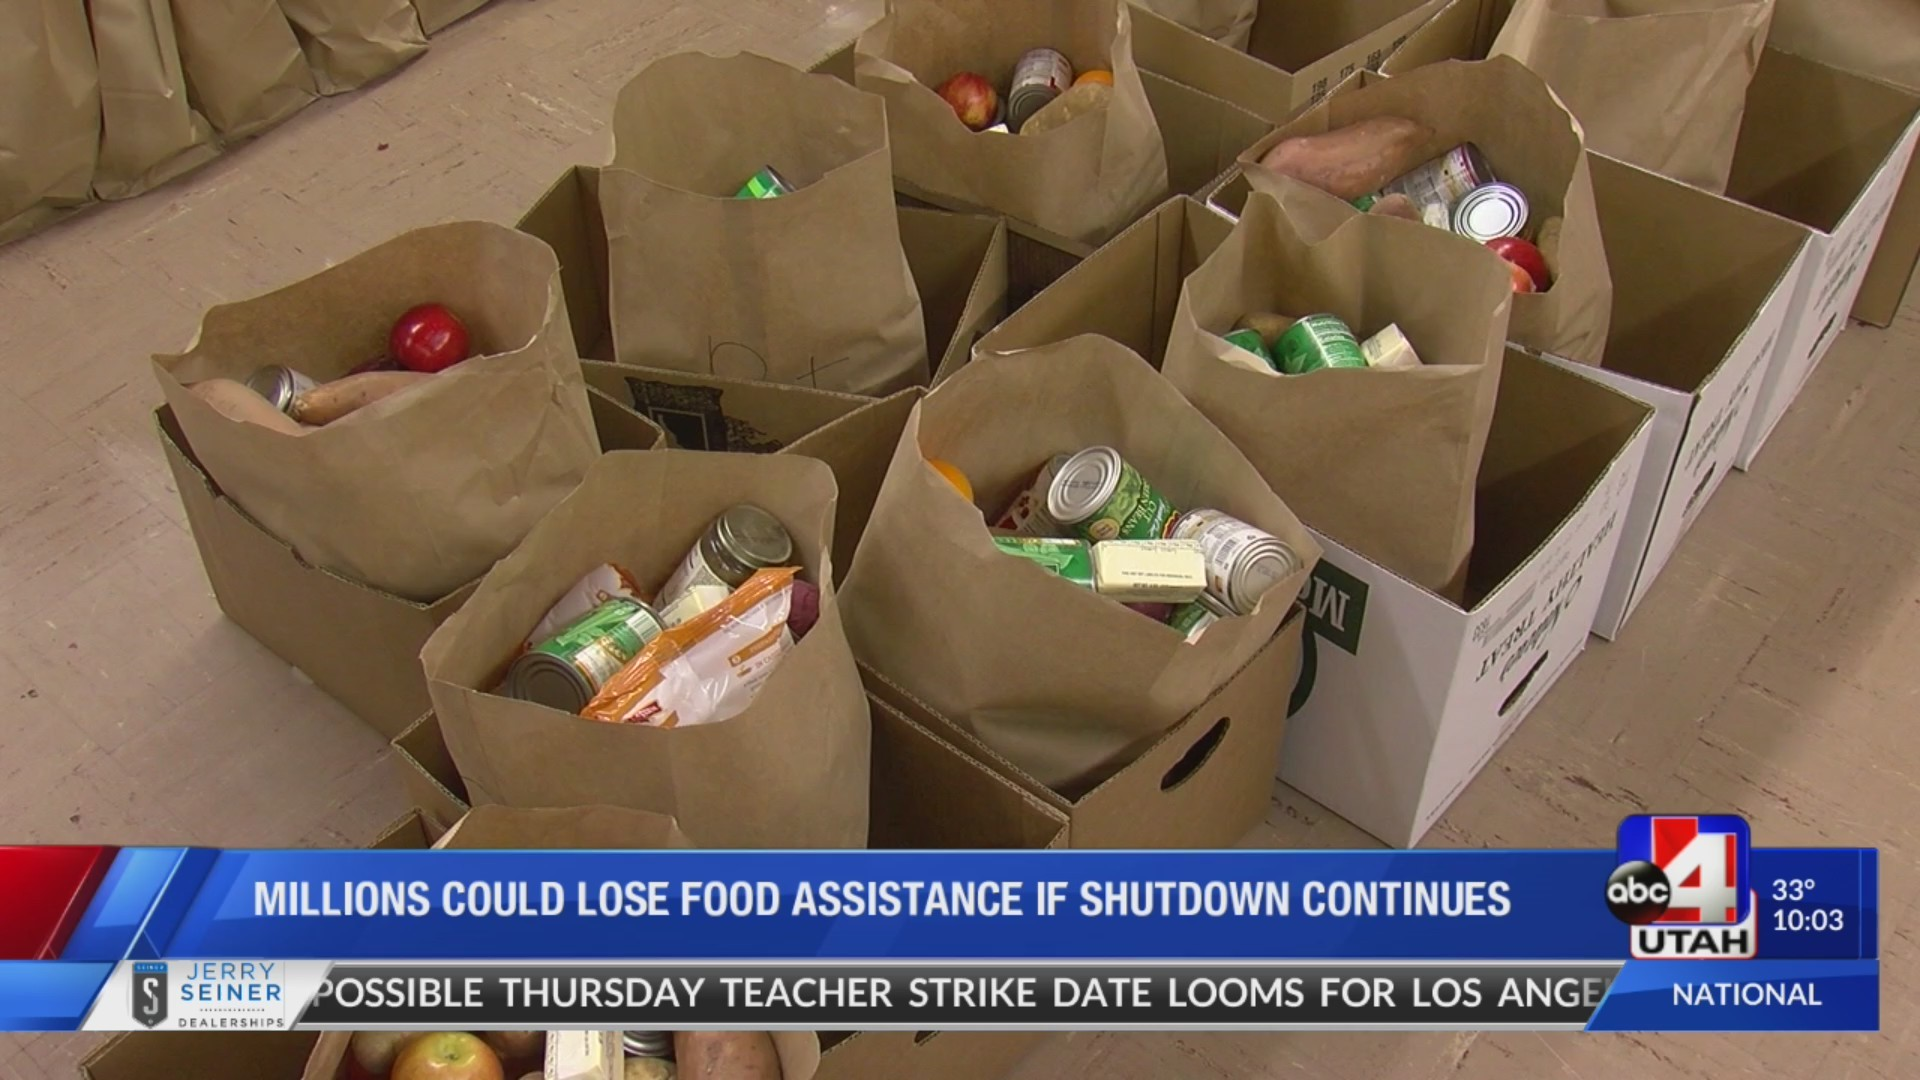 Thousands of Utahns could lose food assistance during government shutdown